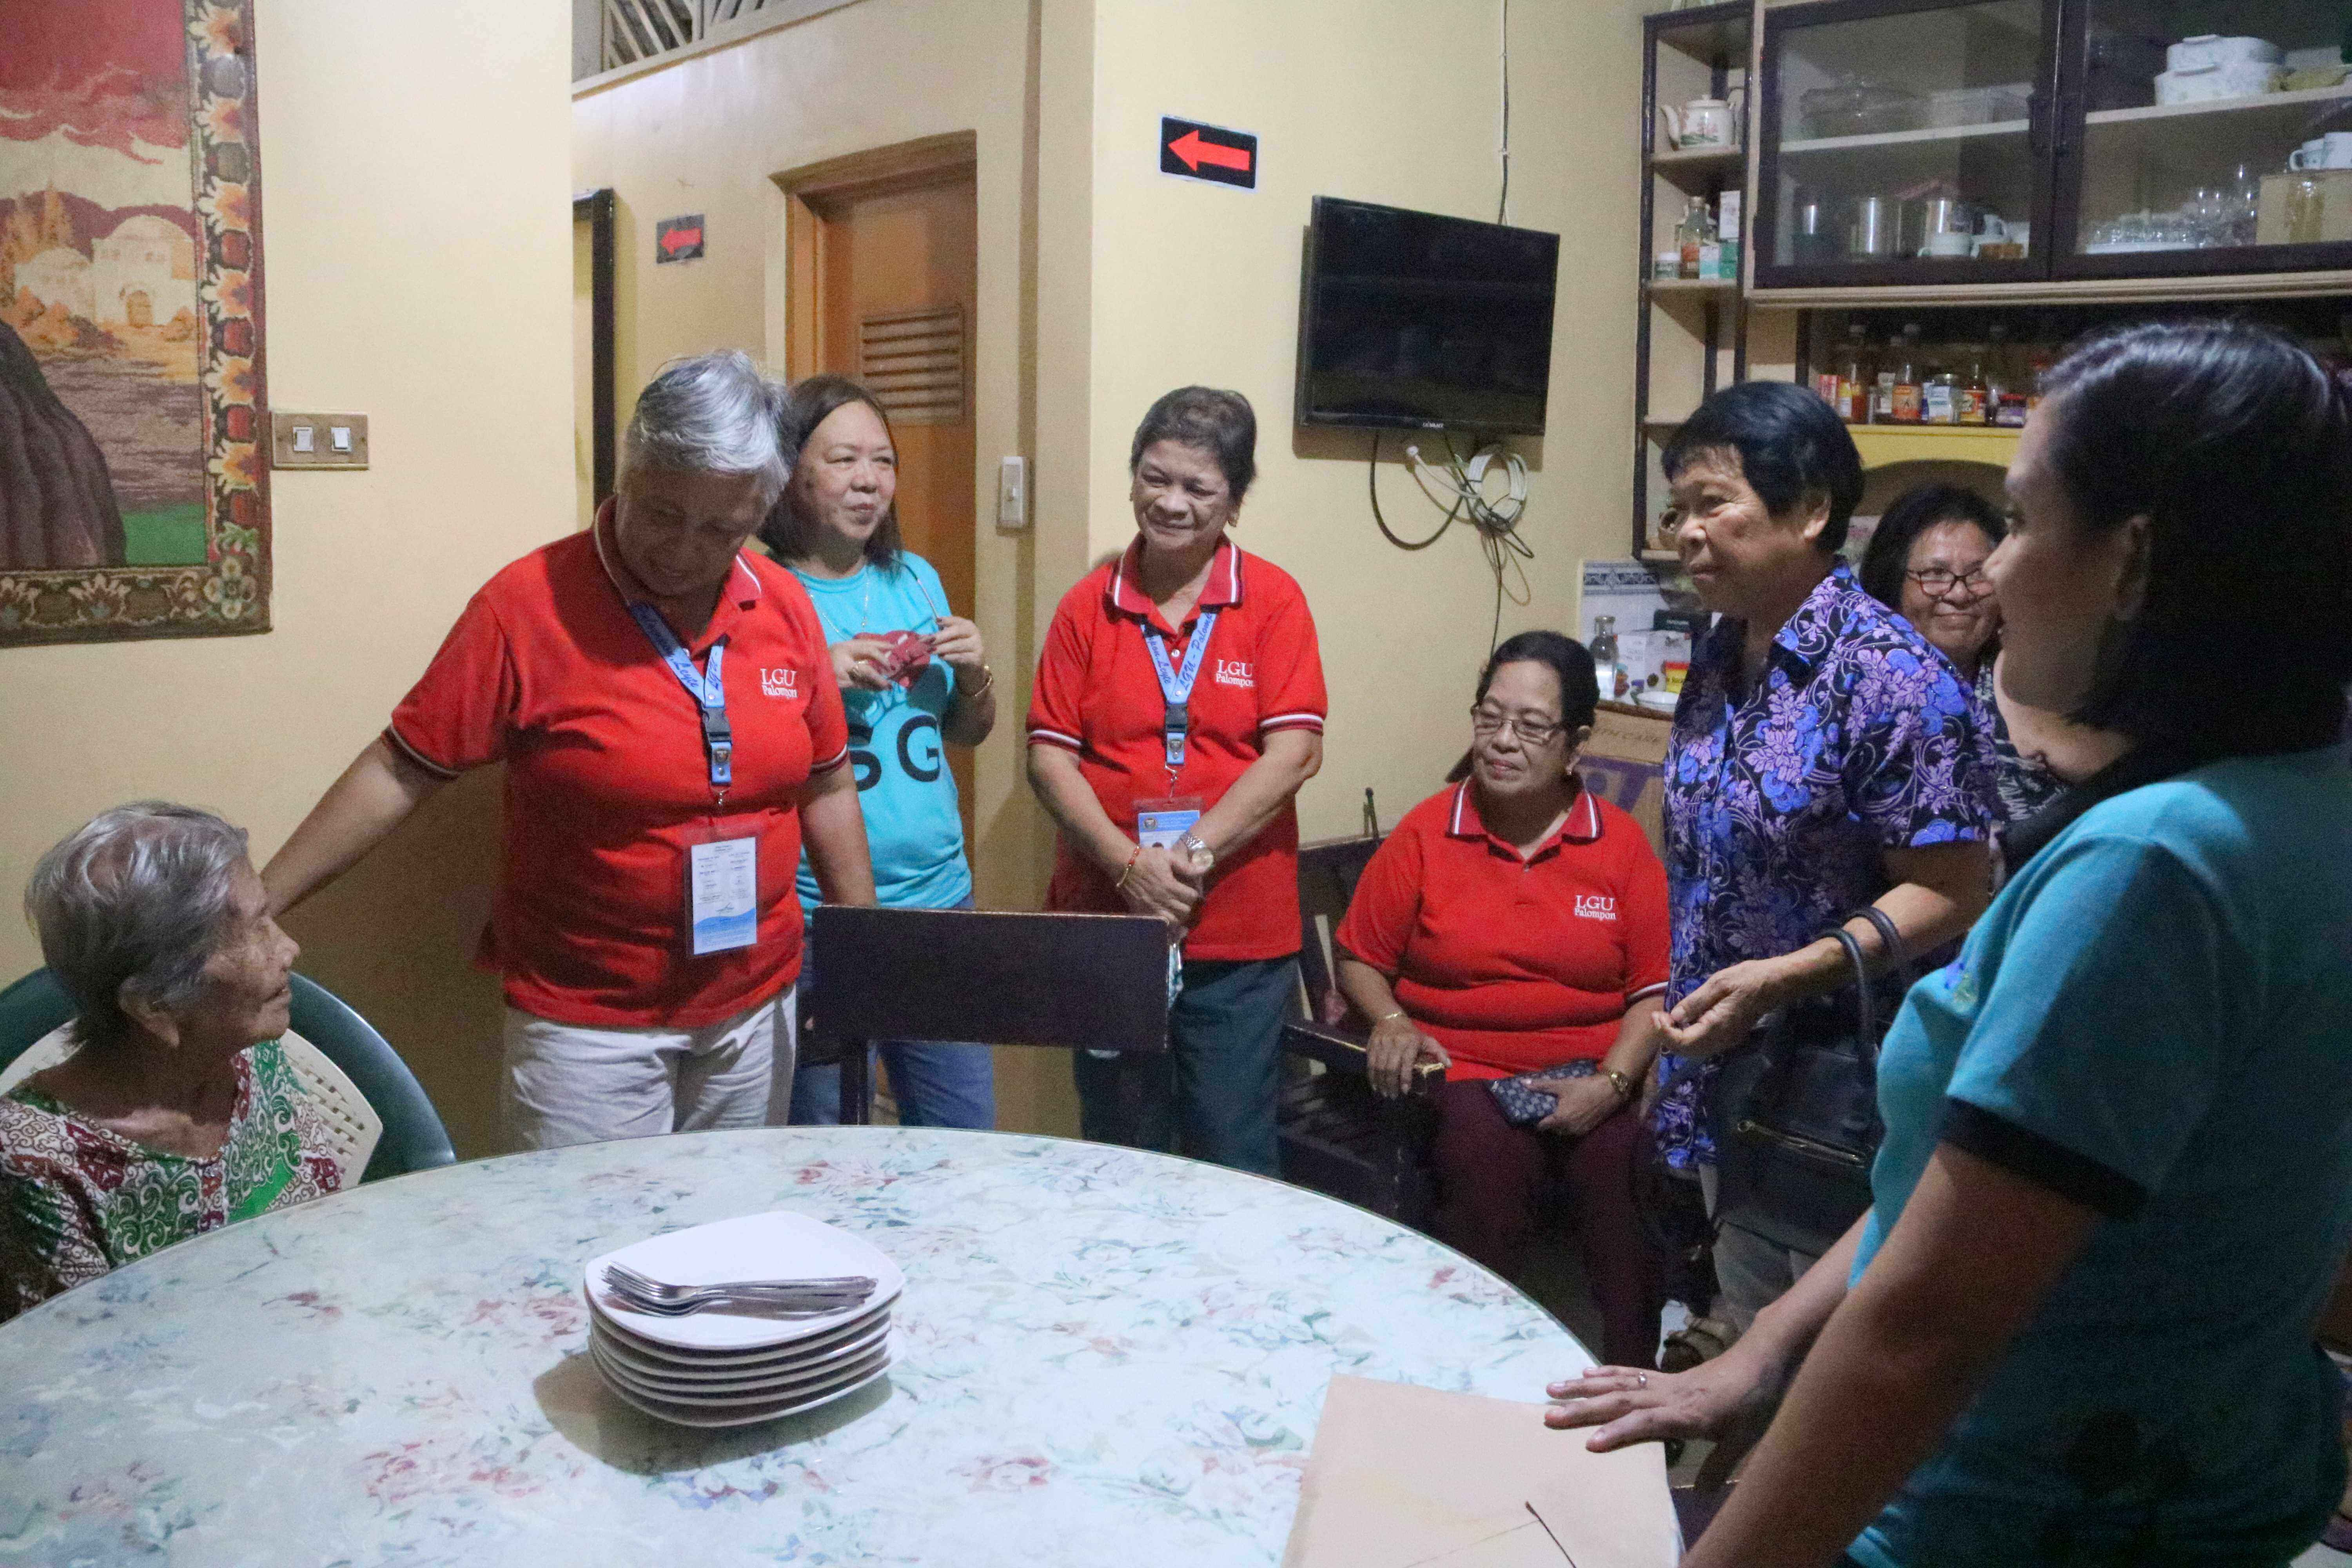 Graced by Longevity and Good Health, Mrs. Concepcion Pinar of Brgy. Tabunok Palompon